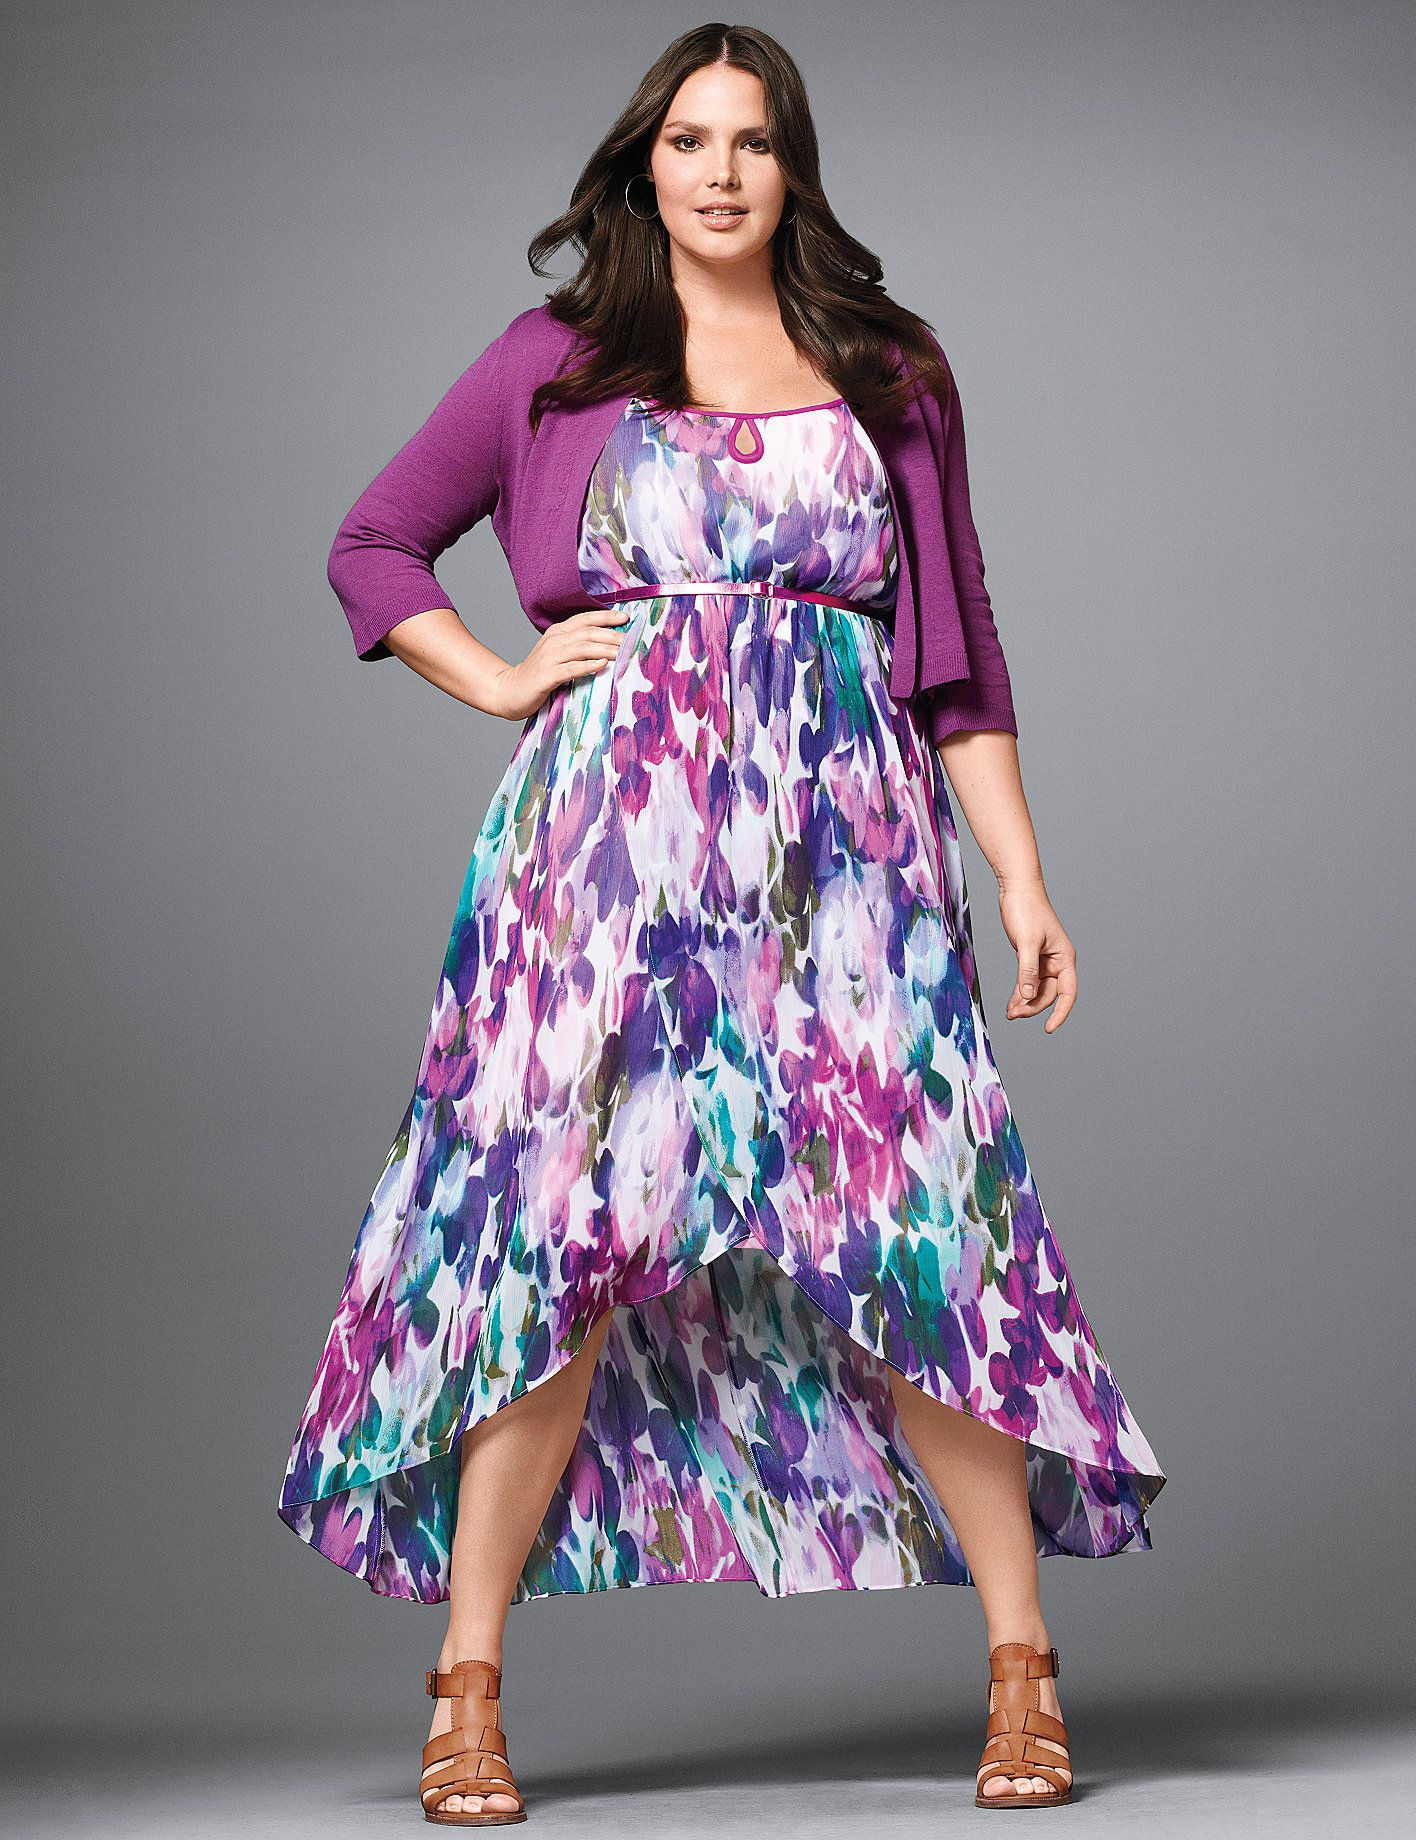 All Dresses & Skirts for Plus Size Women | Lane Bryant | Sexy ...